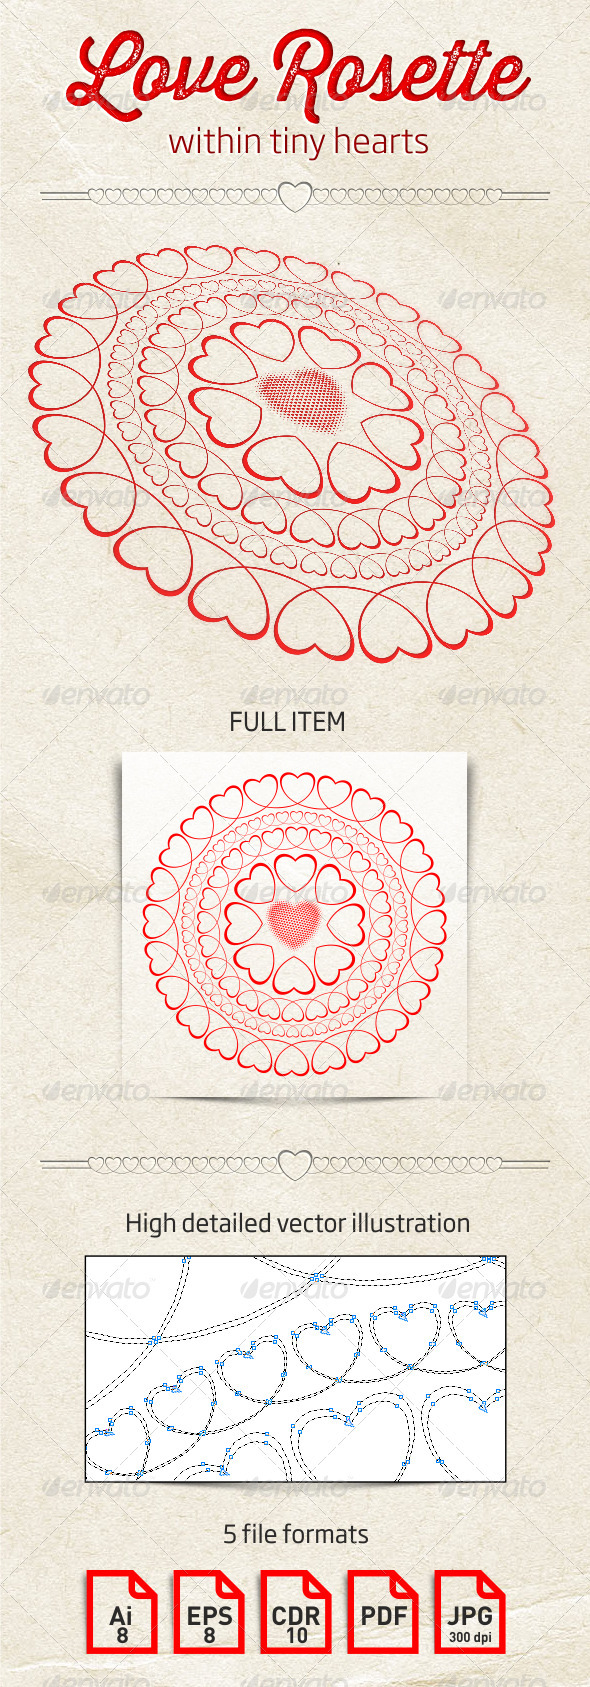 GraphicRiver Love Rosette Within Tiny Hearts 3957727